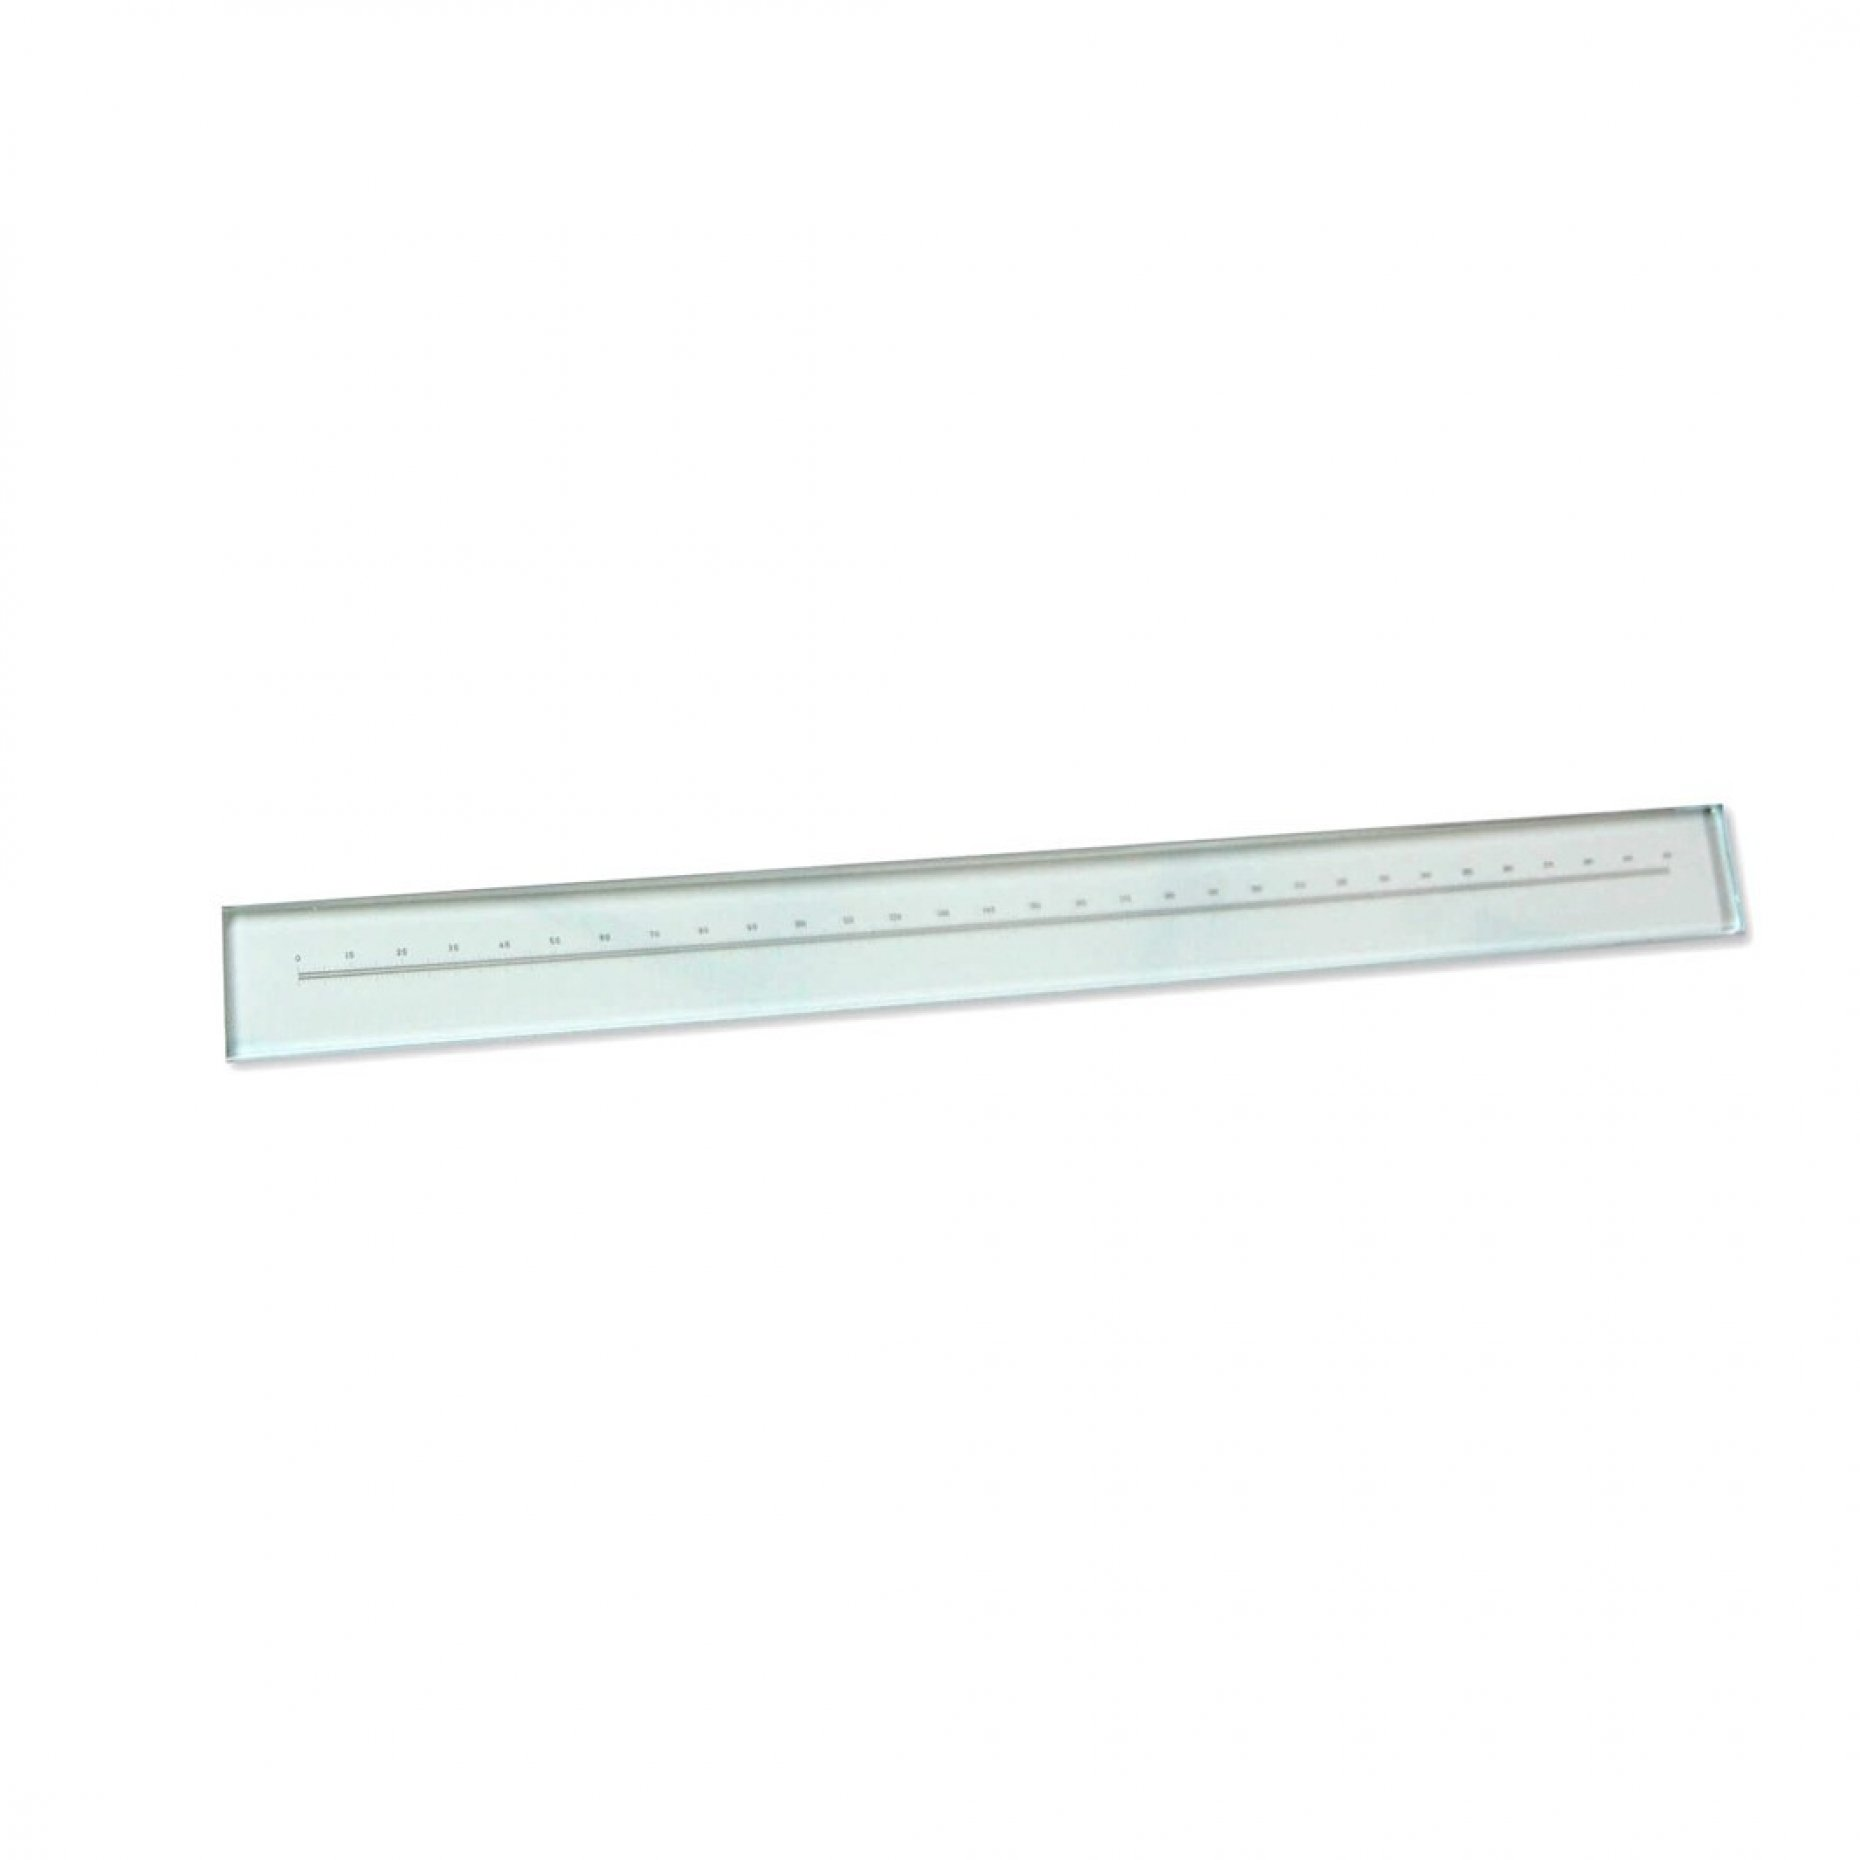 PCA700 Replacement Scale 450mm/0.1mm